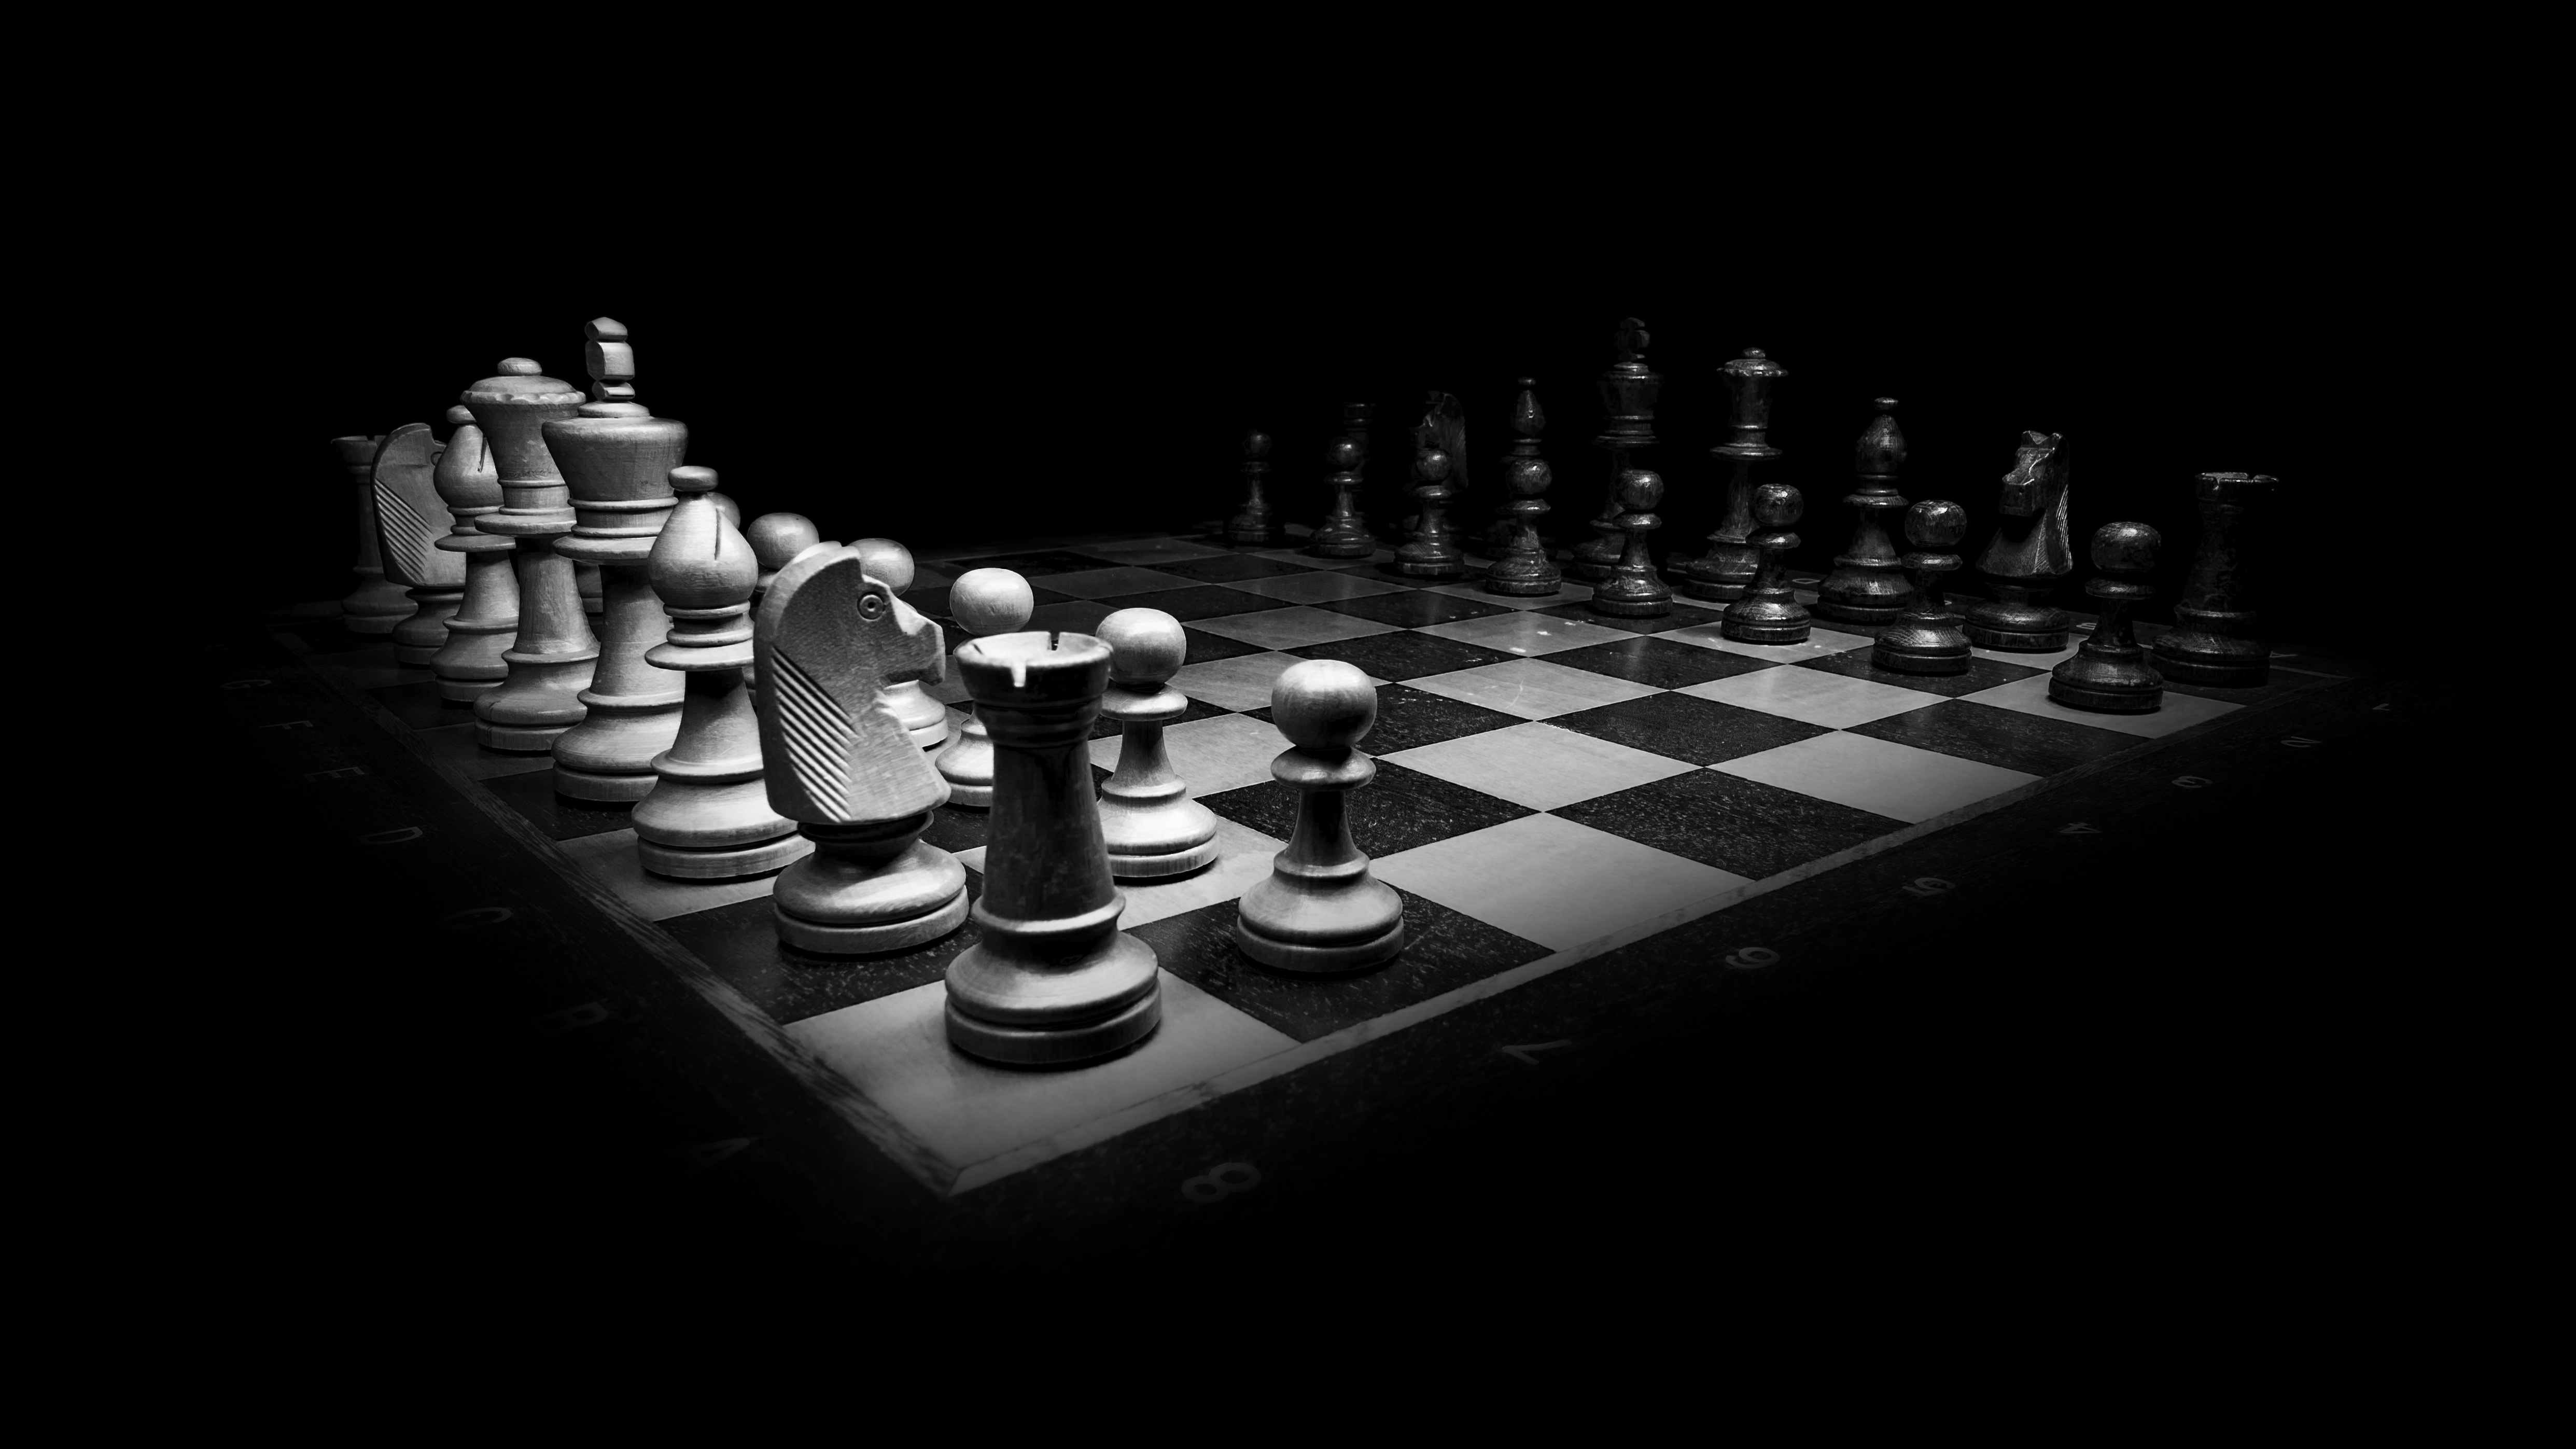 Chess Monochrome Hd Others 4k Wallpapers Images Backgrounds